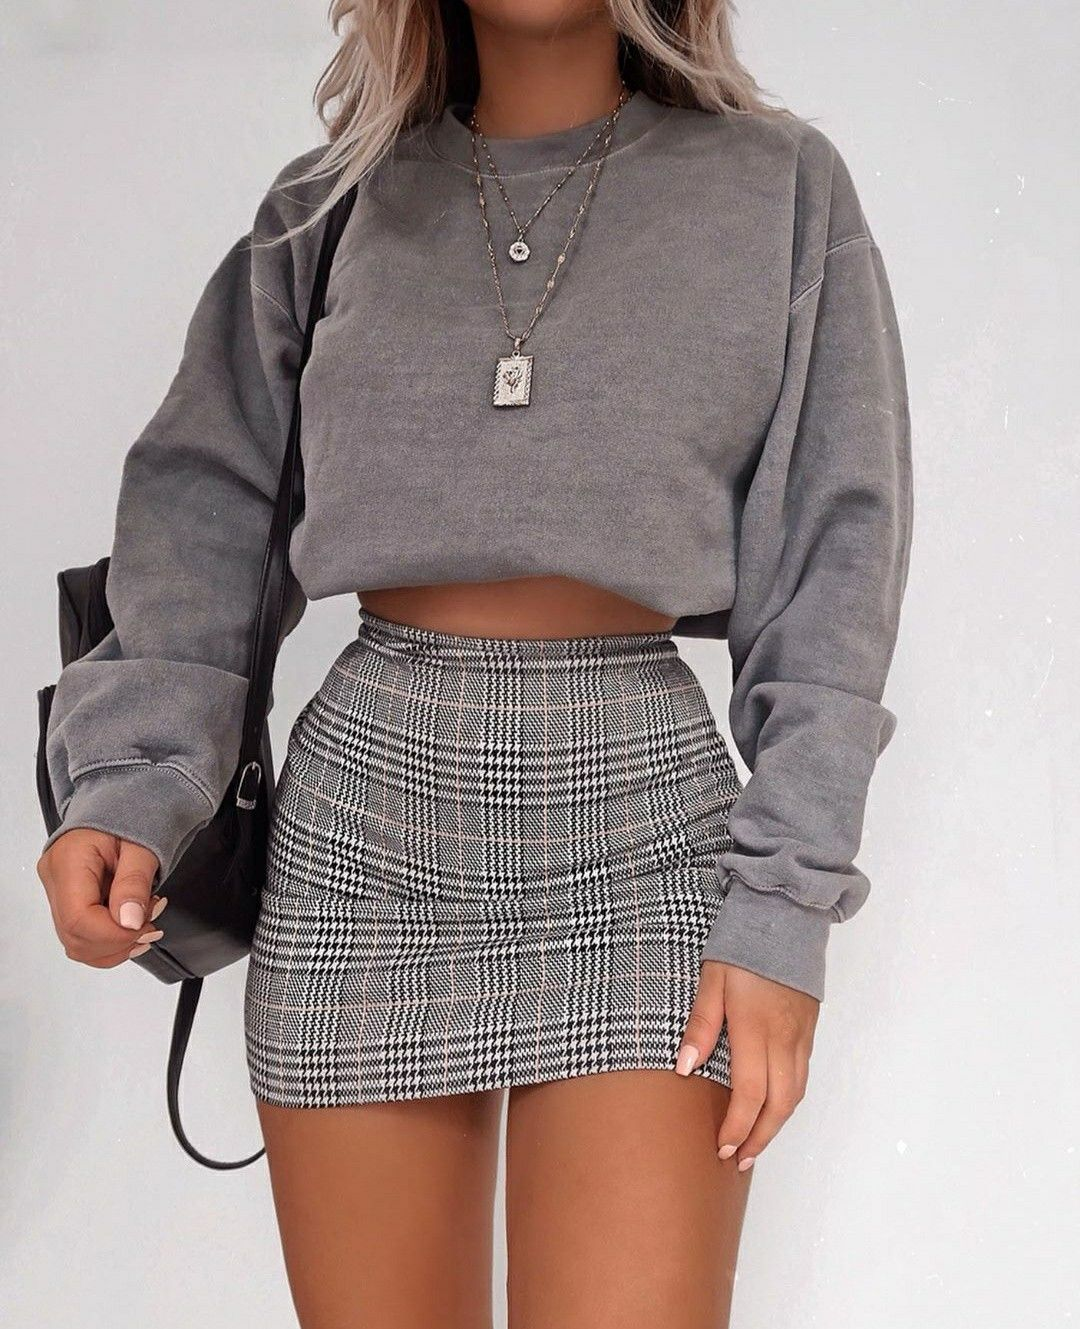 Pin By Alexis Malone On Outfits Cute Casual Outfits Casual